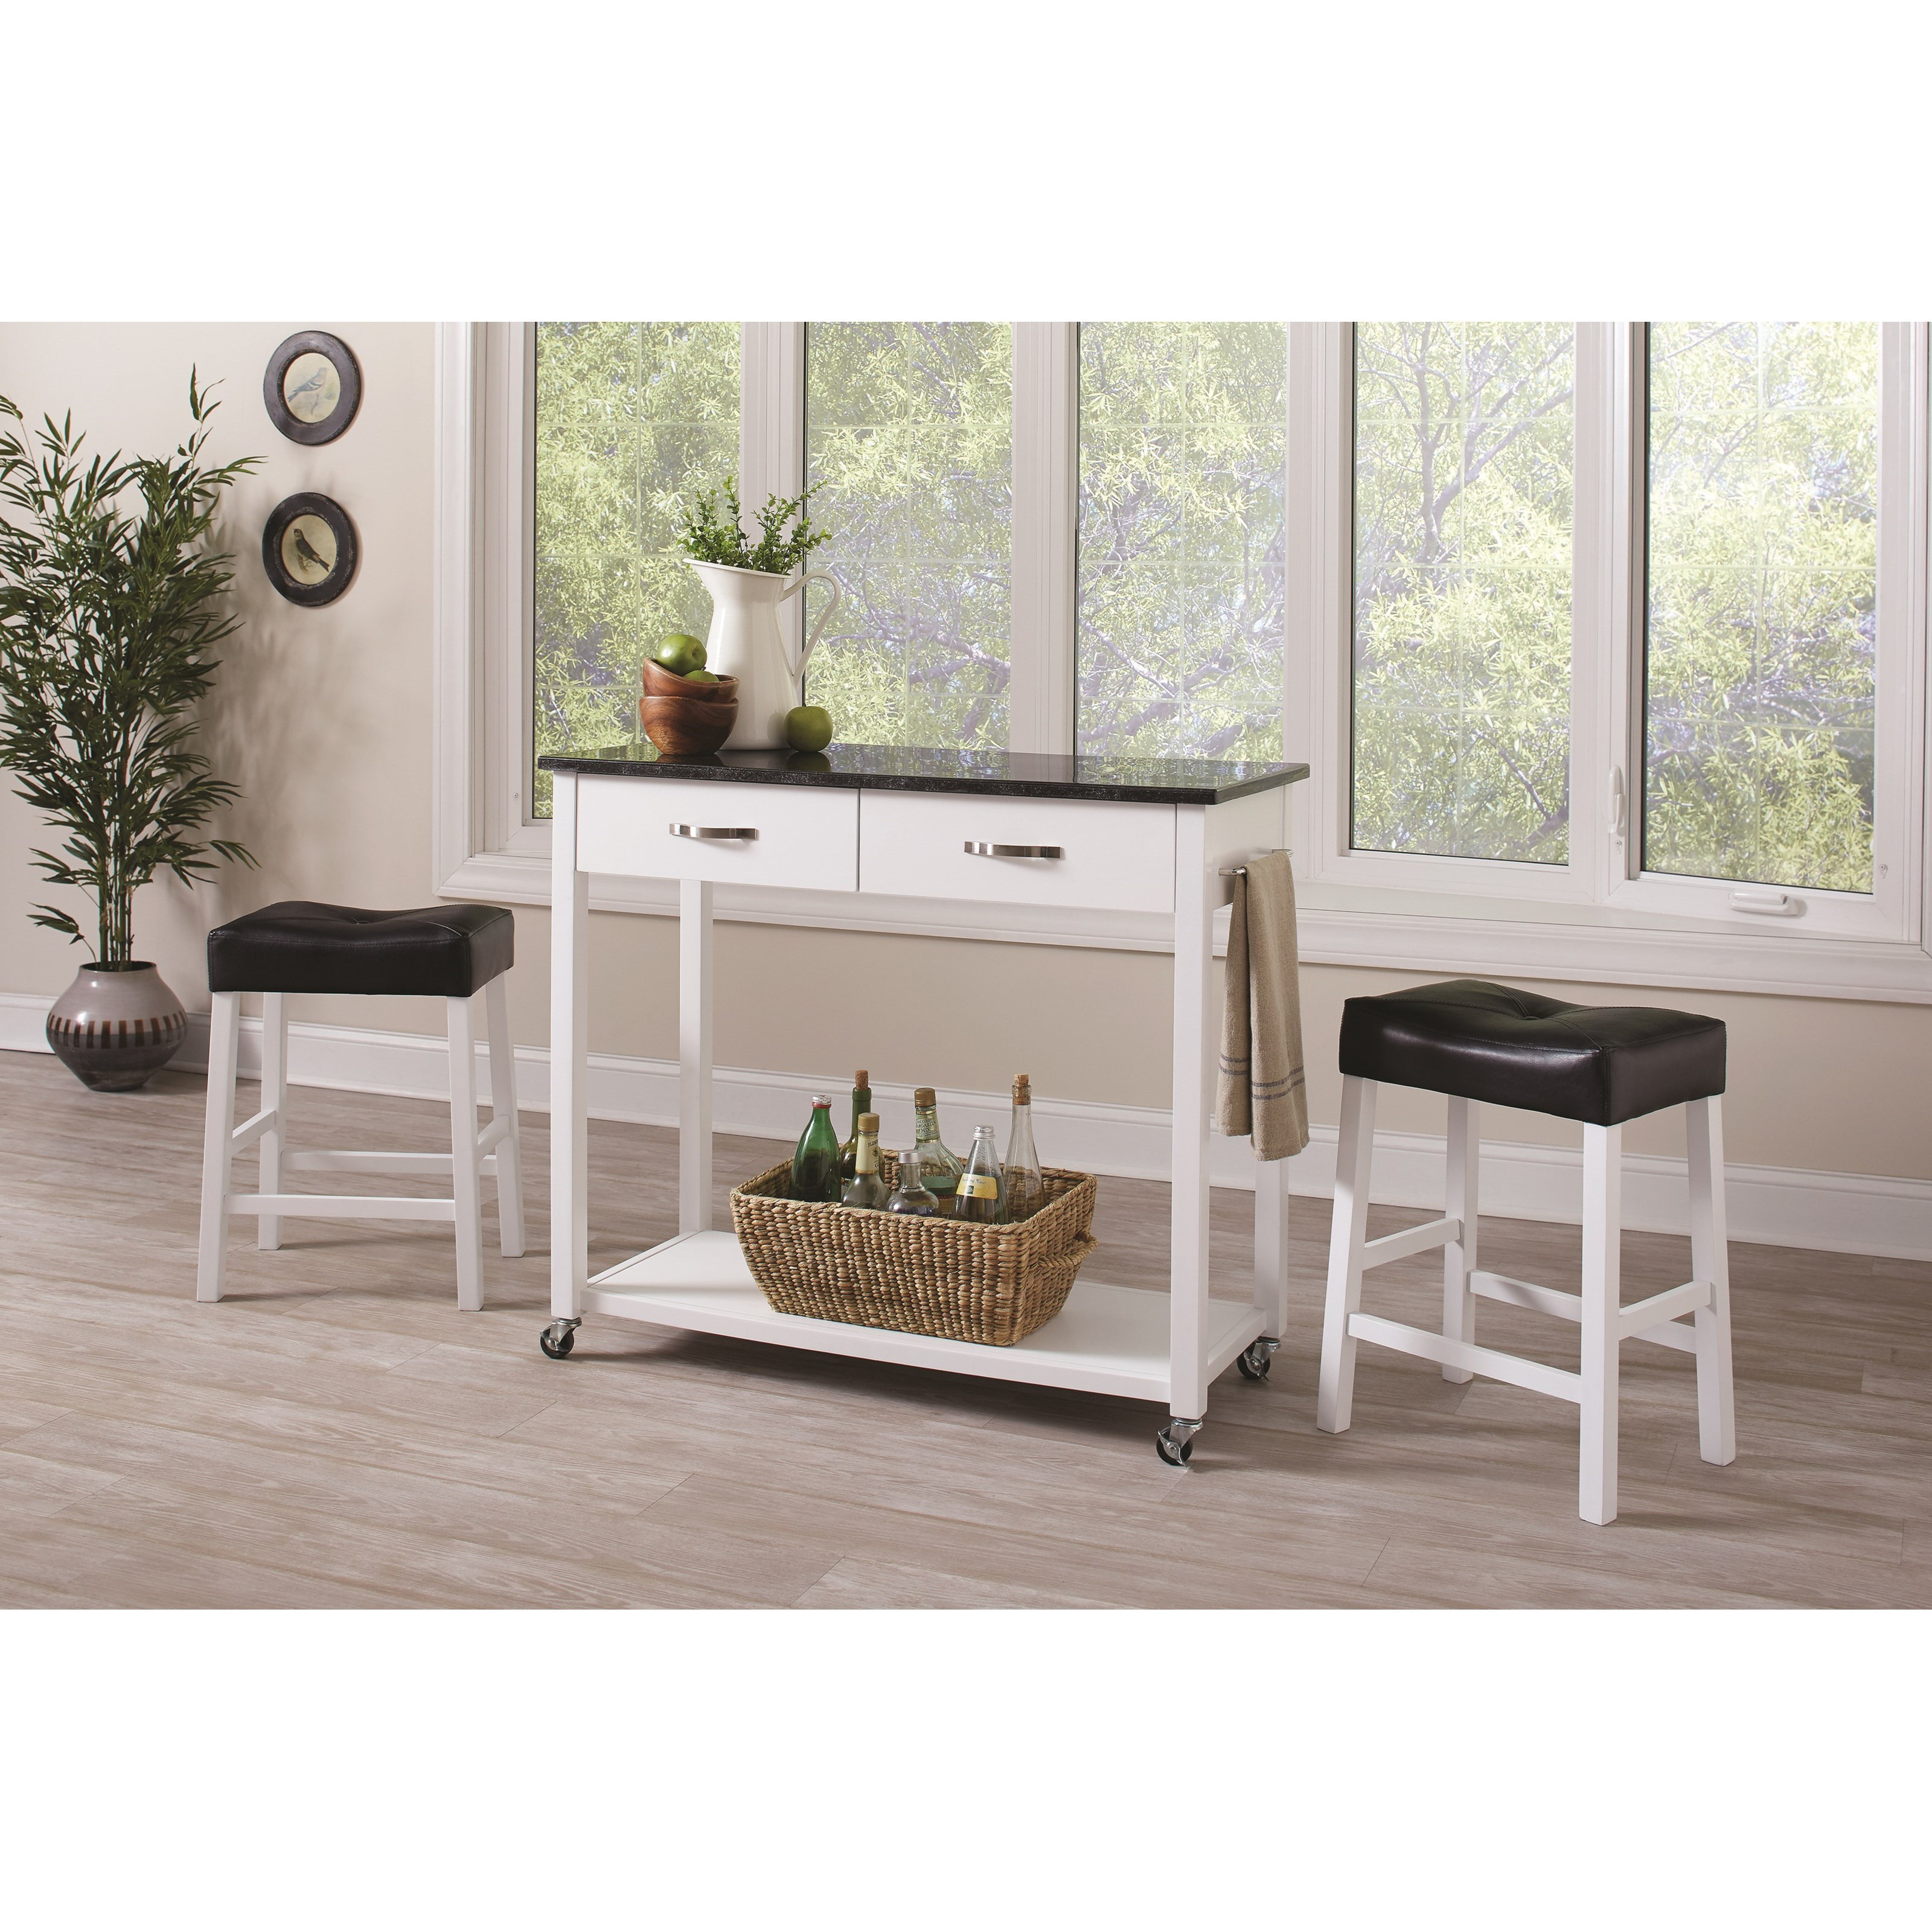 Coaster Dinettes 3 Piece Dining Set - Item Number: 102134